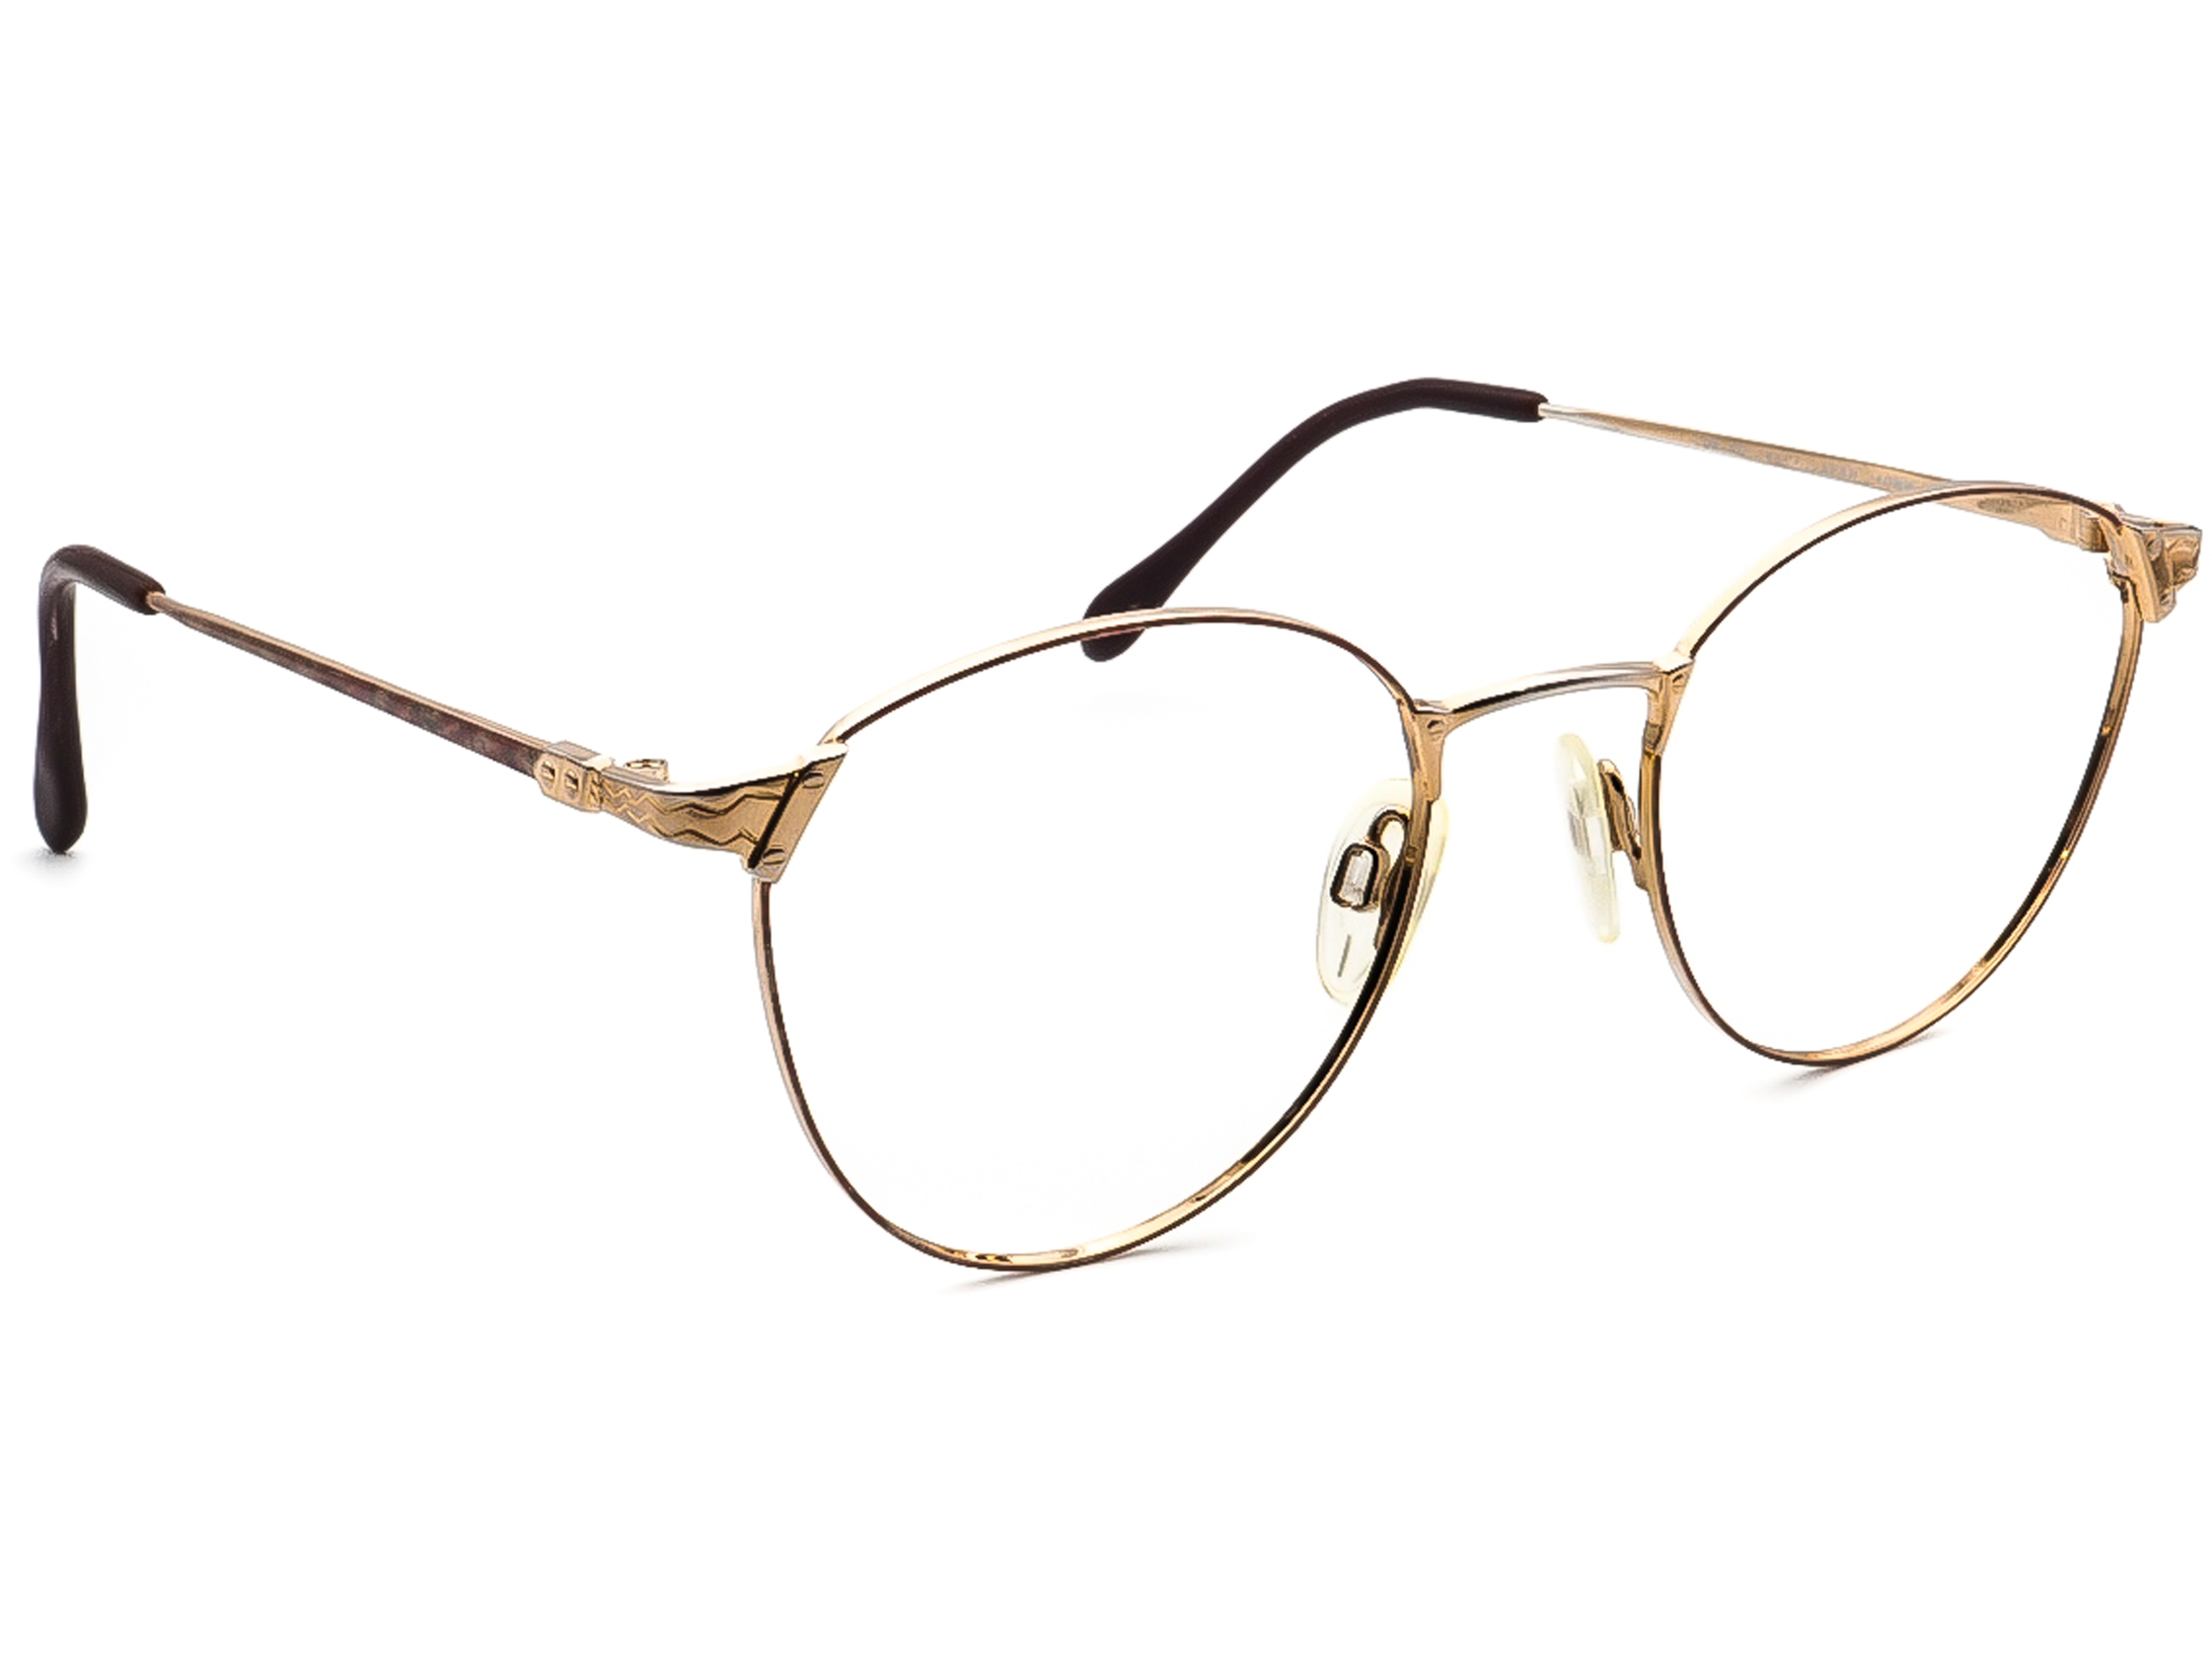 Retro Specs by Charmant G018 Color- RO Eyeglasses